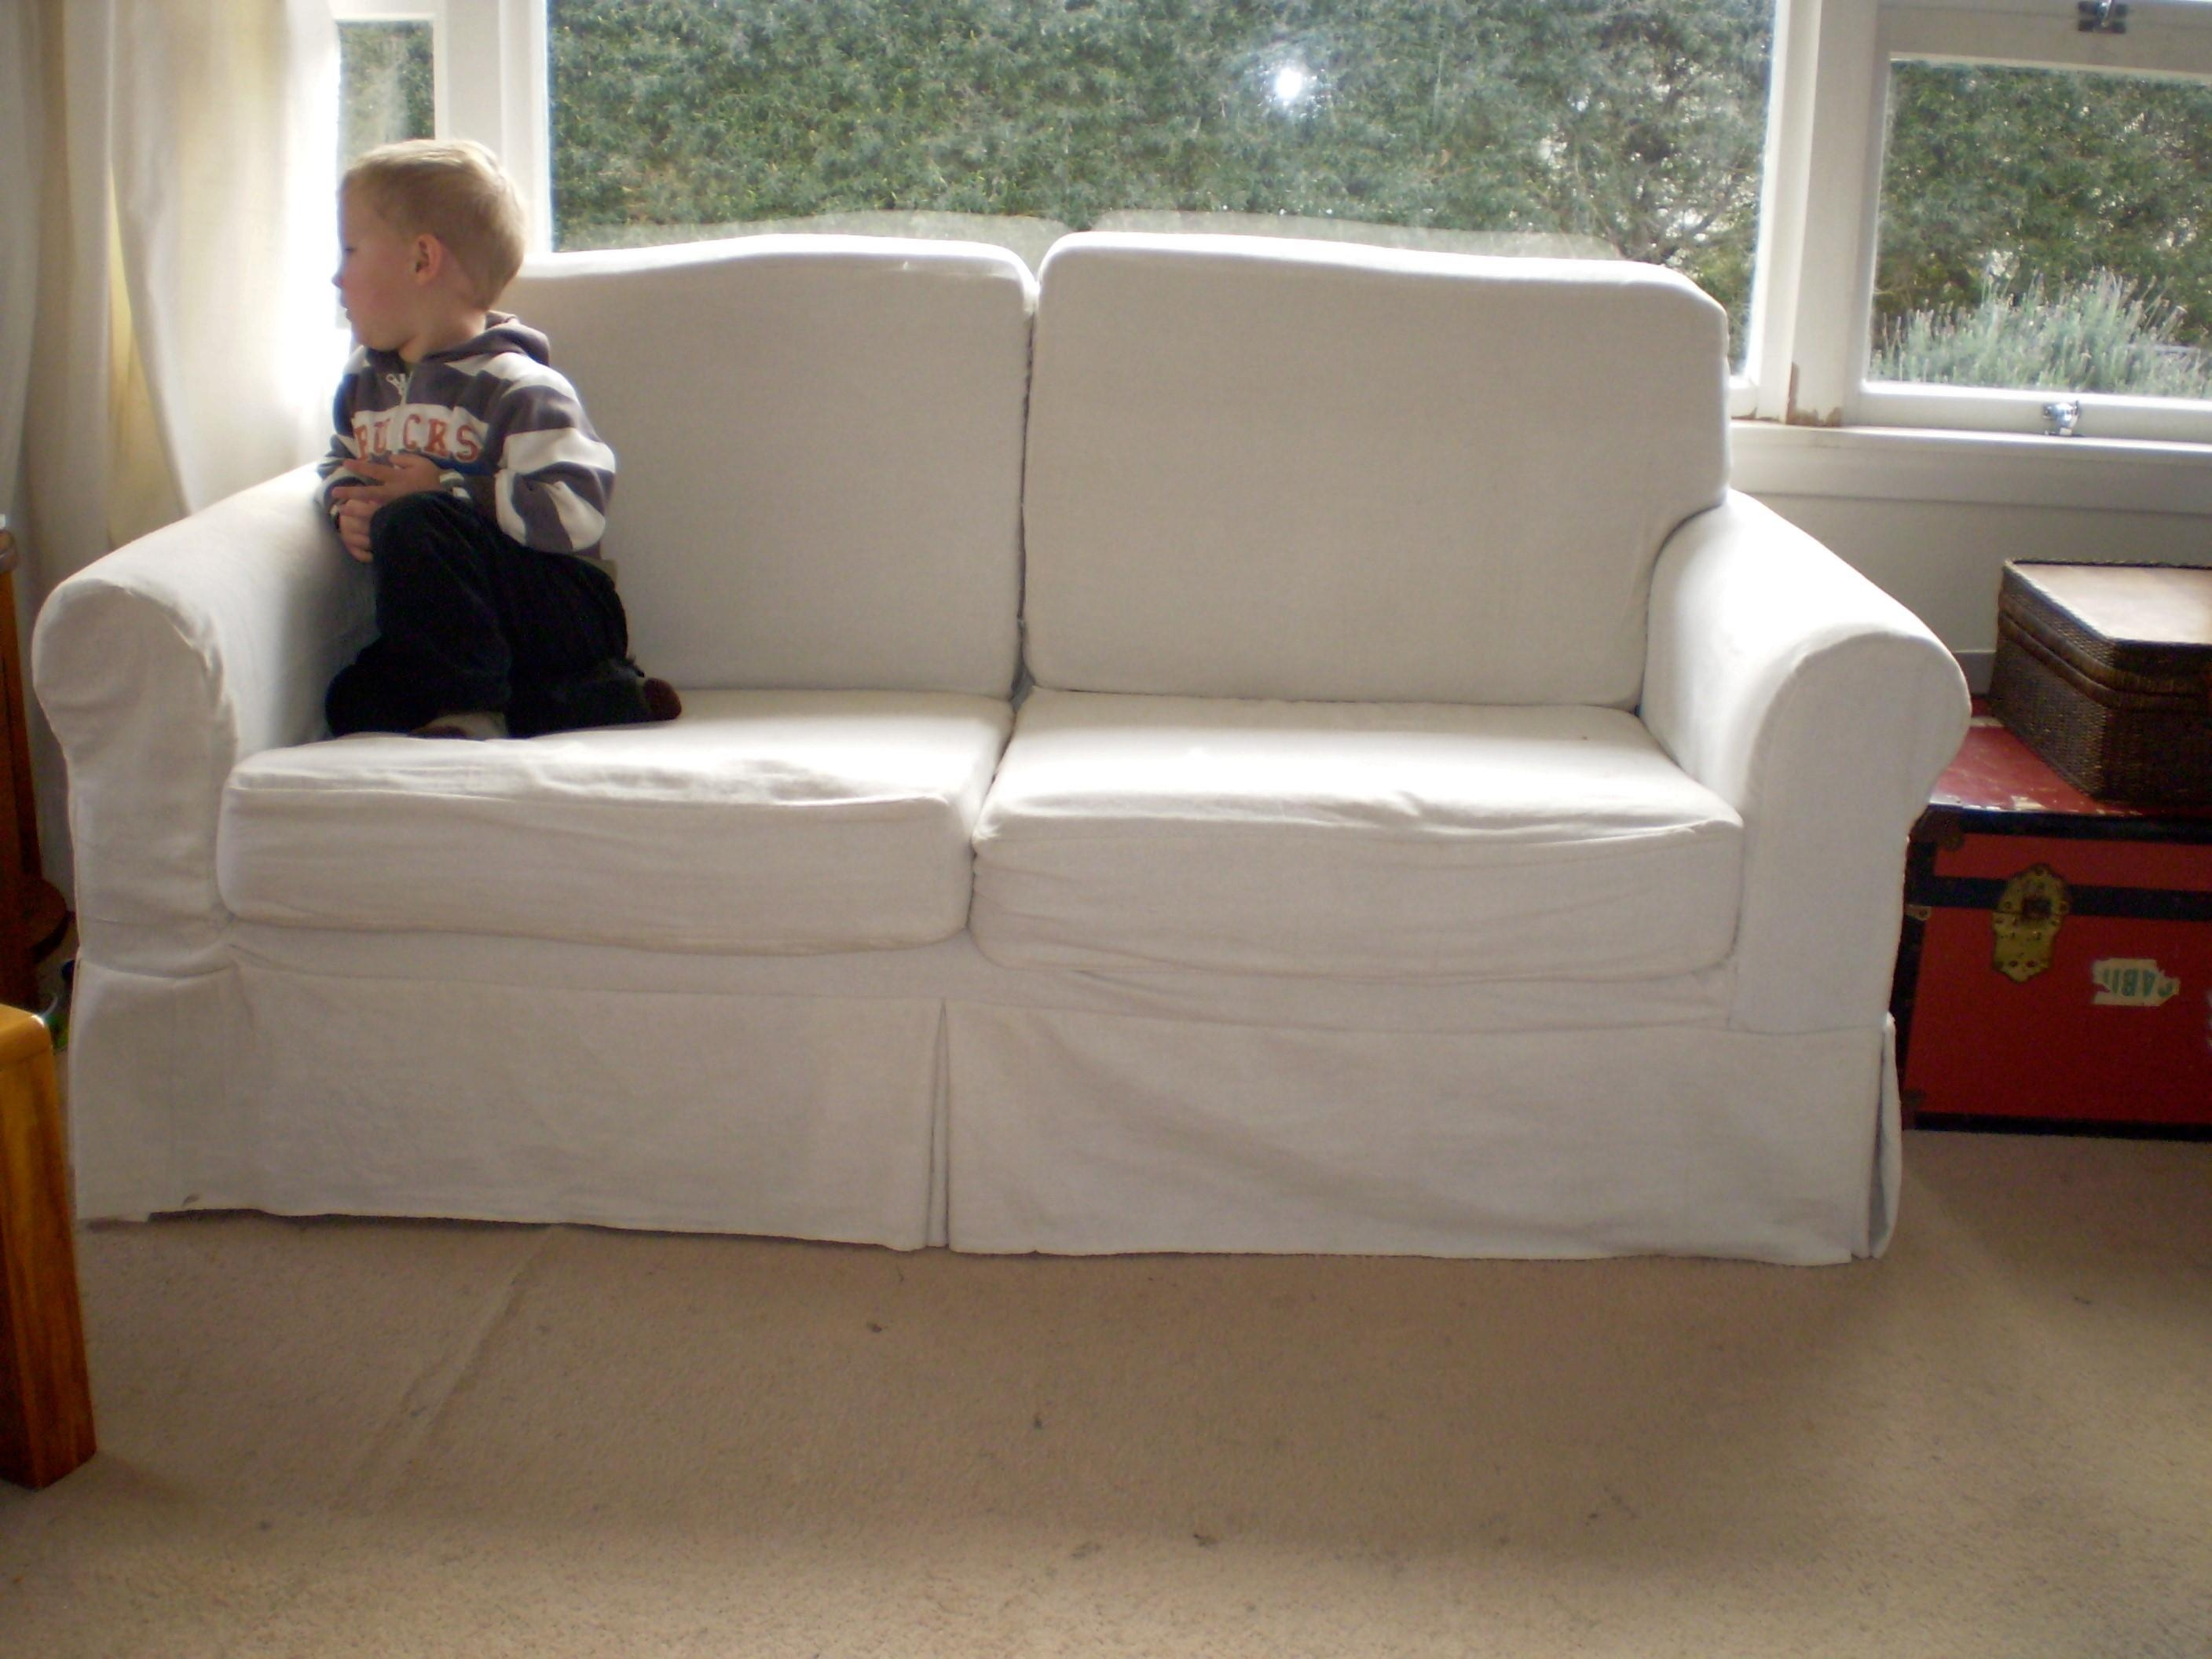 Furniture: Sofa Covers Walmart | Walmart Couch Covers | Slip Regarding Slipcovers For Chairs And Sofas (Image 16 of 20)